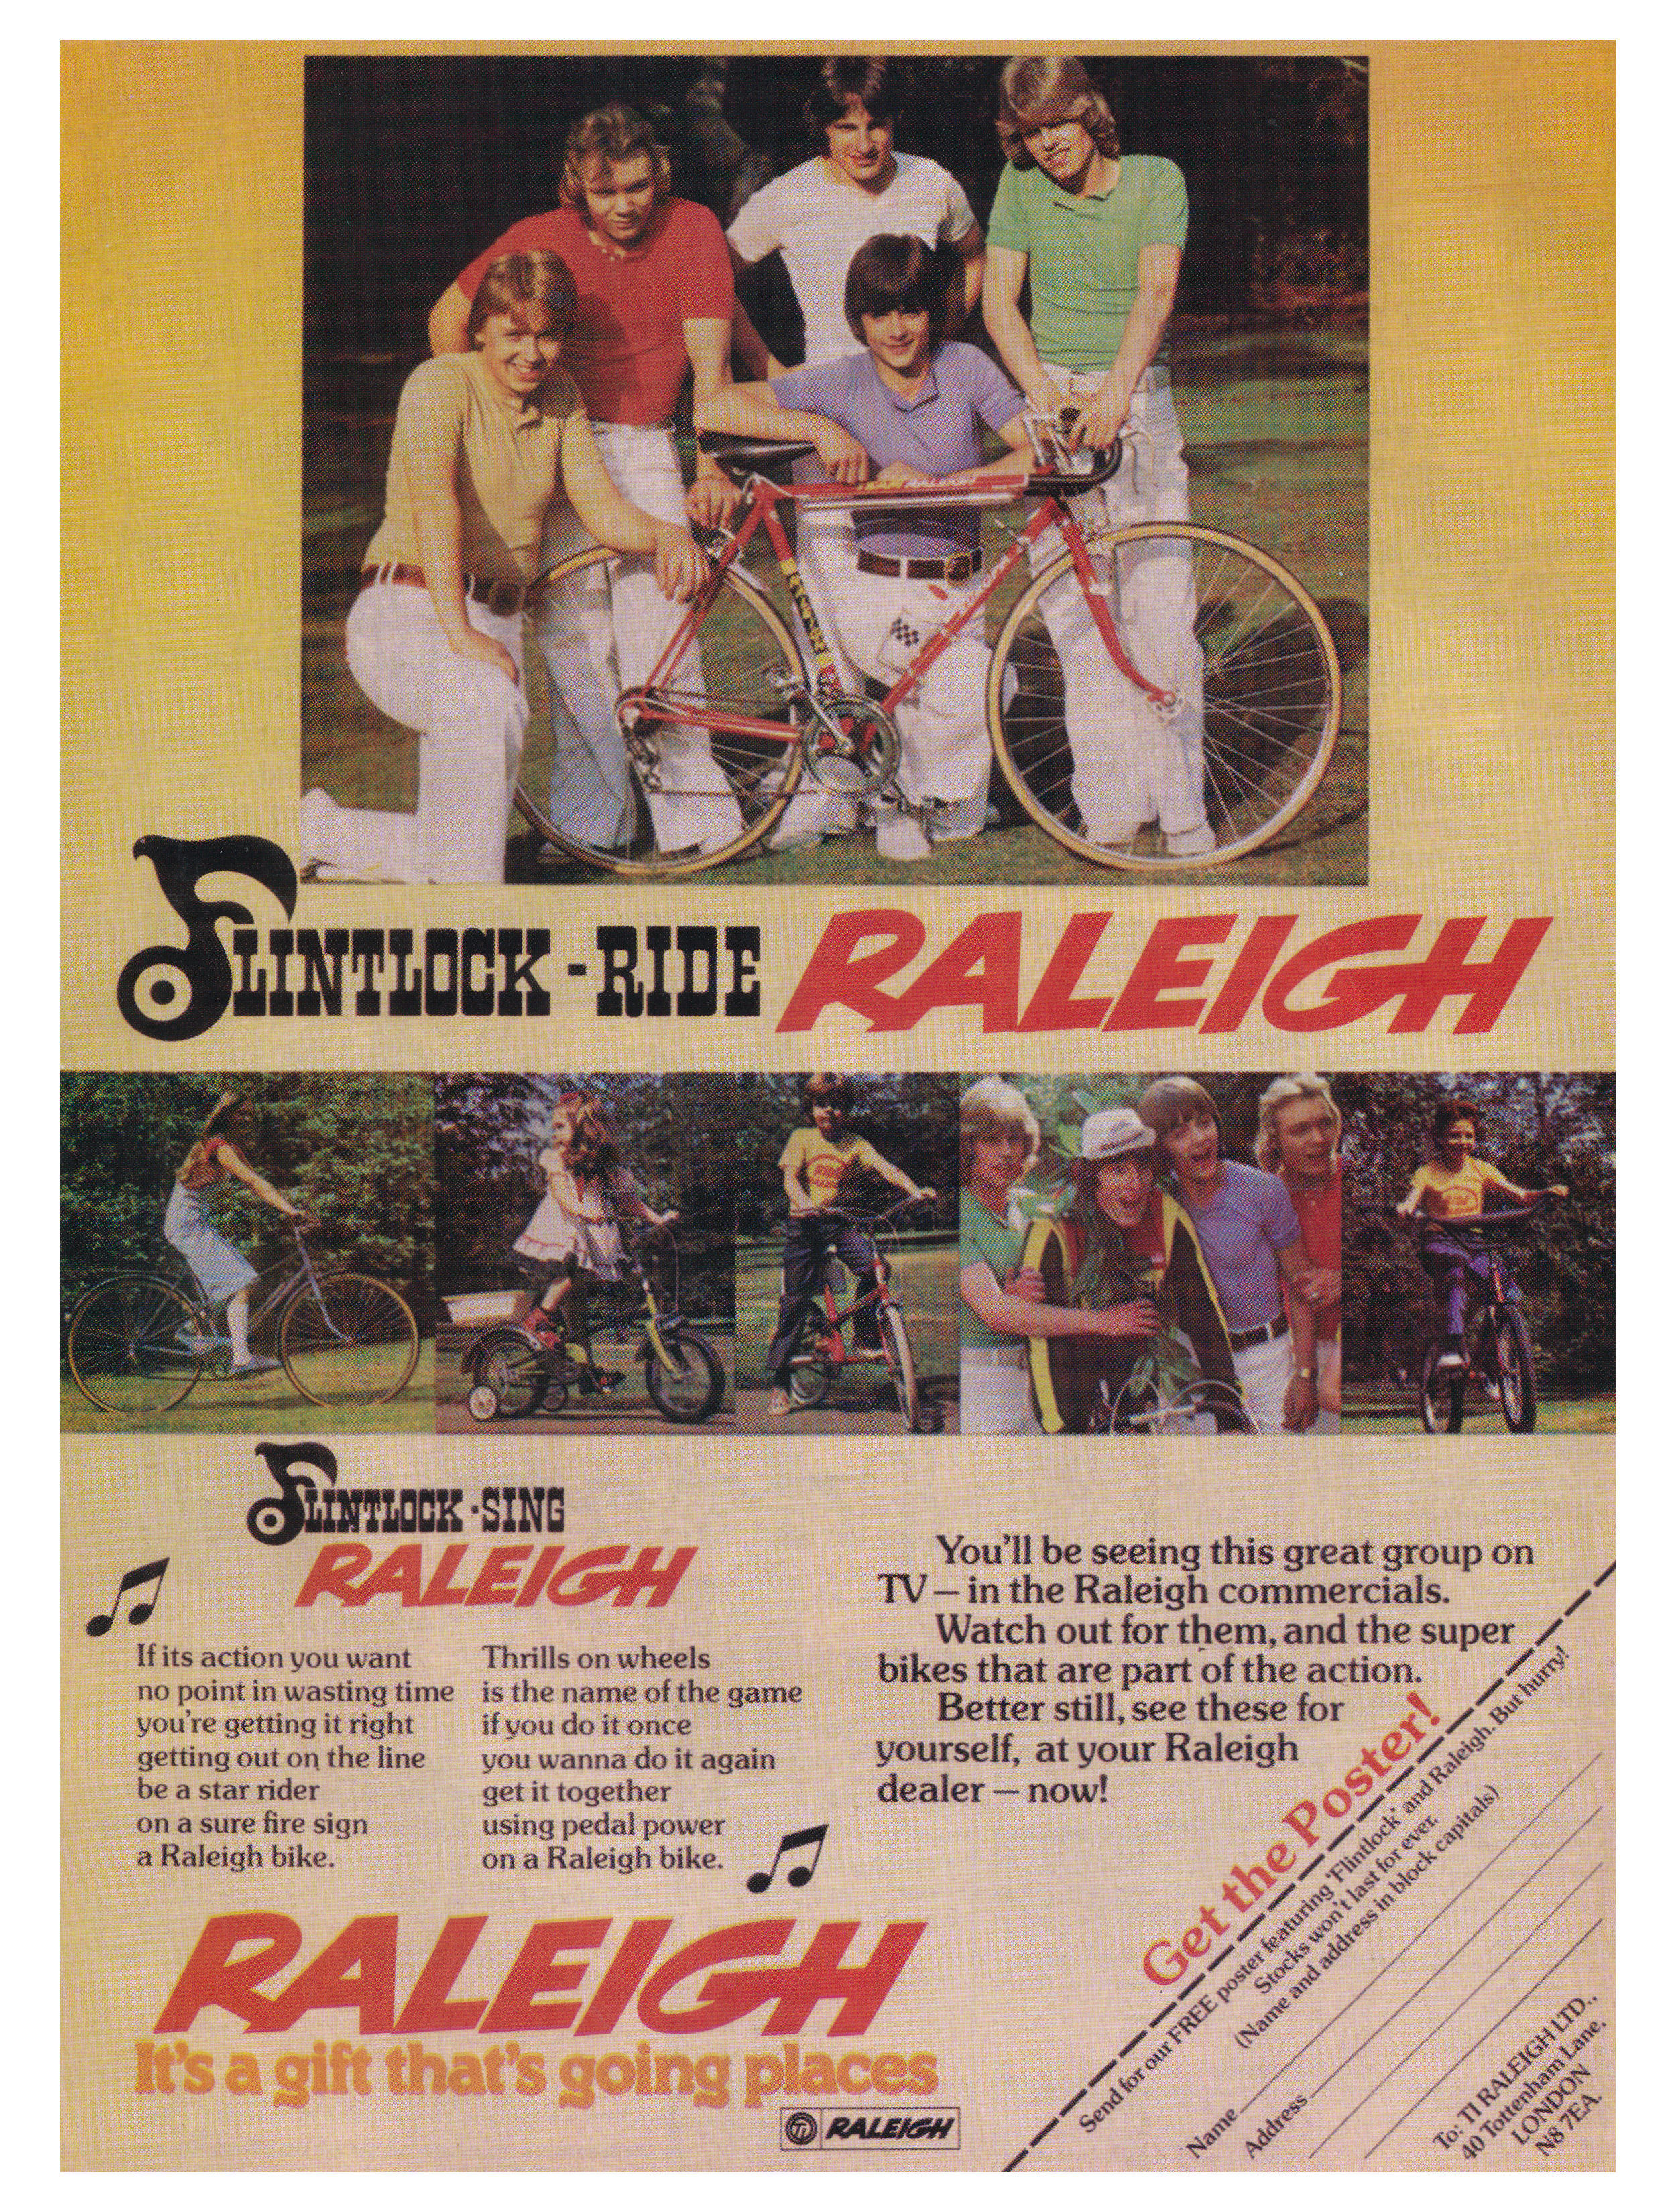 Flintlock ride Raleigh in 1977.